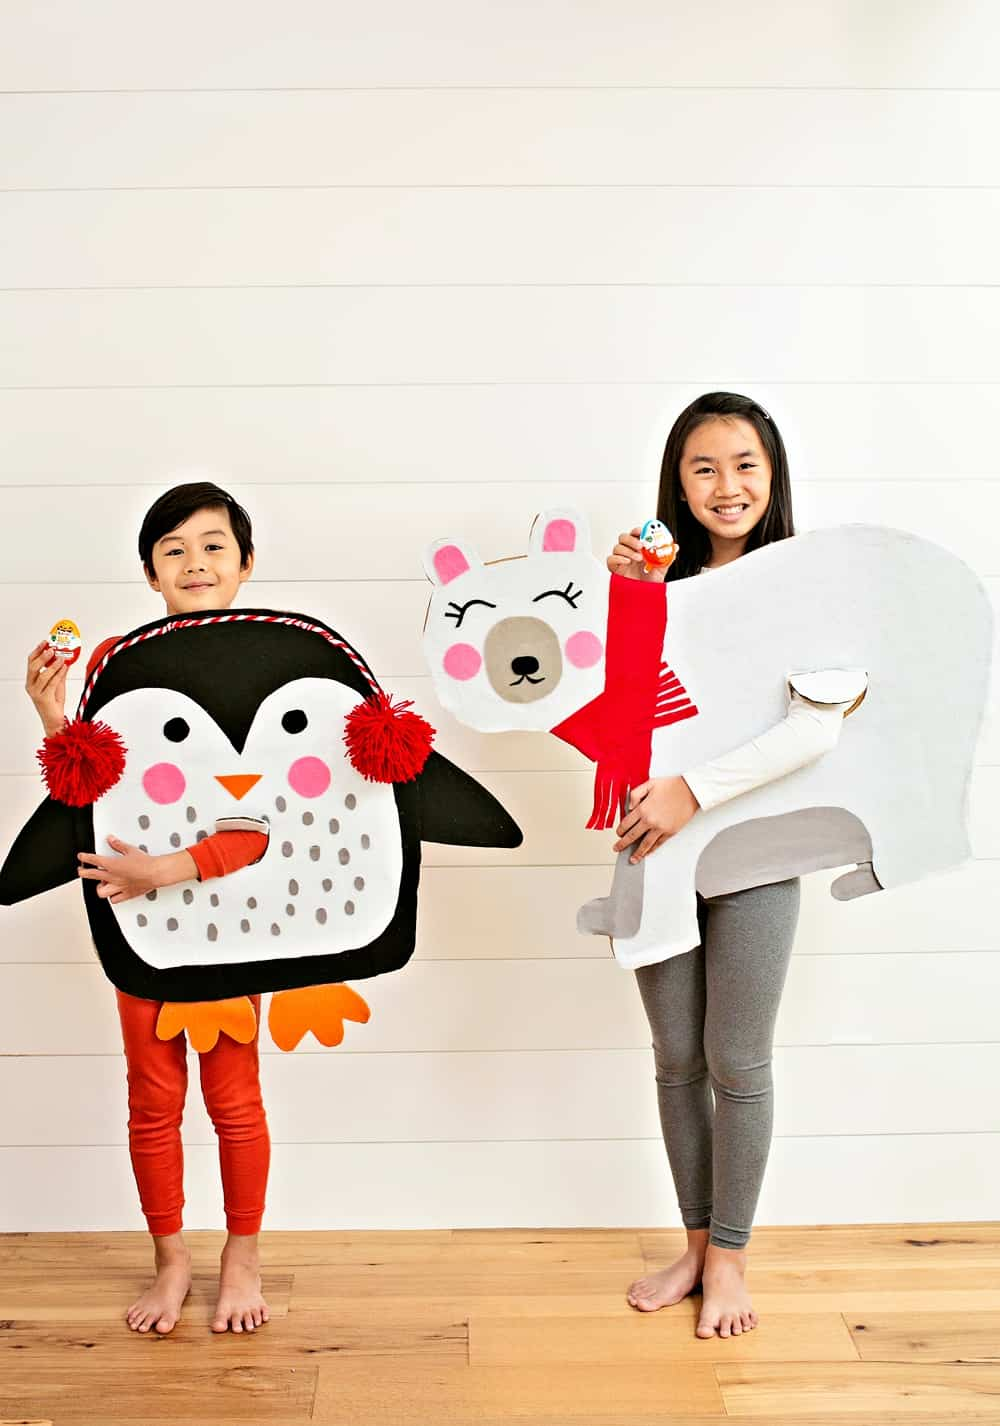 DIY CARDBOARD POLAR BEAR AND PENGUIN COSTUMES